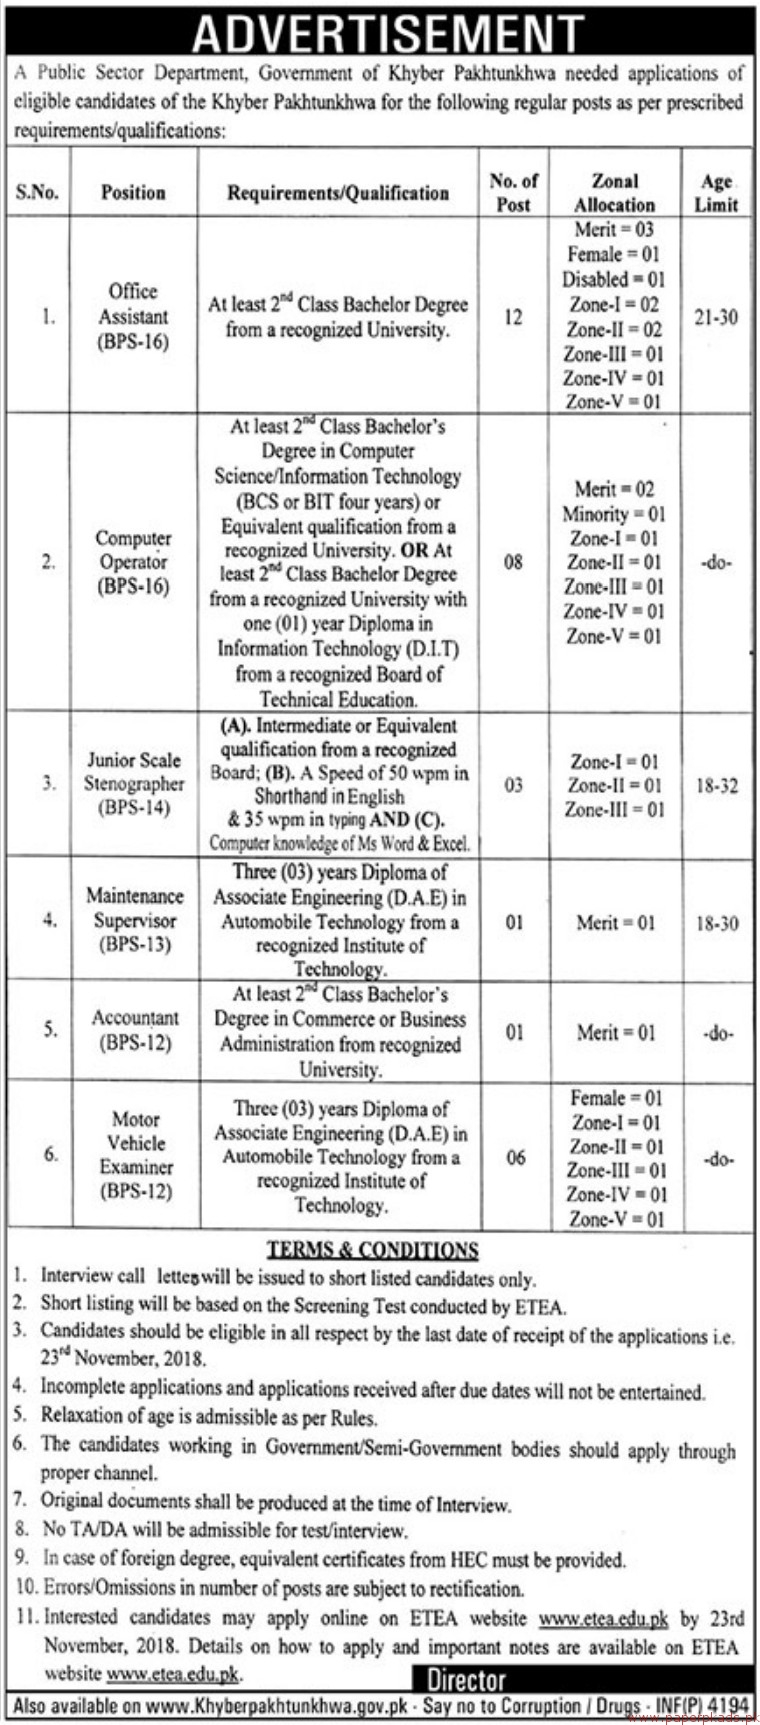 Government of KPK - Public Sector Department Jobs 2018 Latest